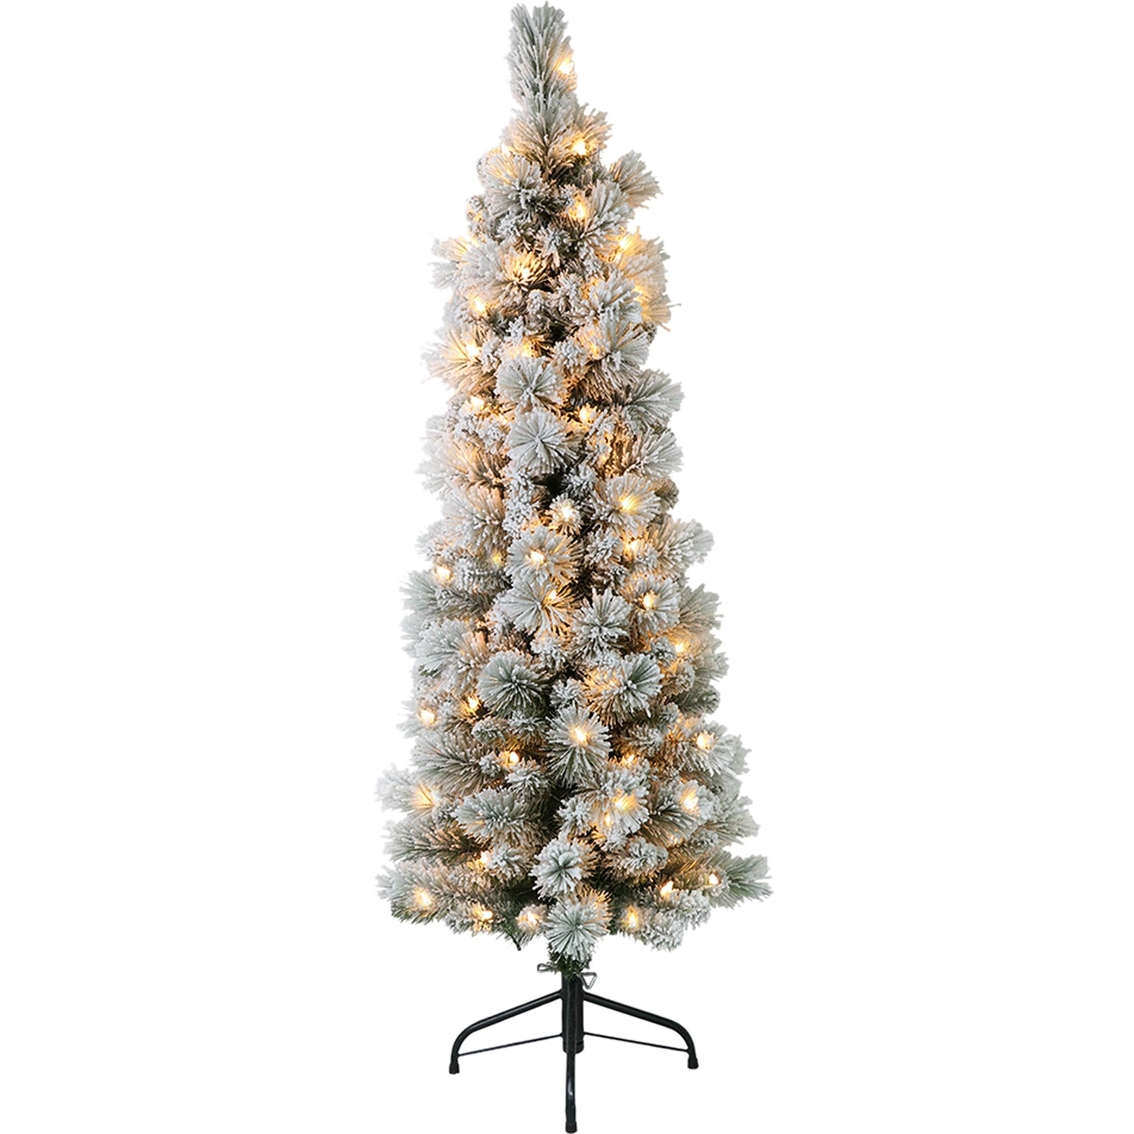 4 5 Ft Pre Lit Flocked Patagonia Pine Pencil Christmas Tree With 100 Lights Trees Stands Household Shop The Exchange